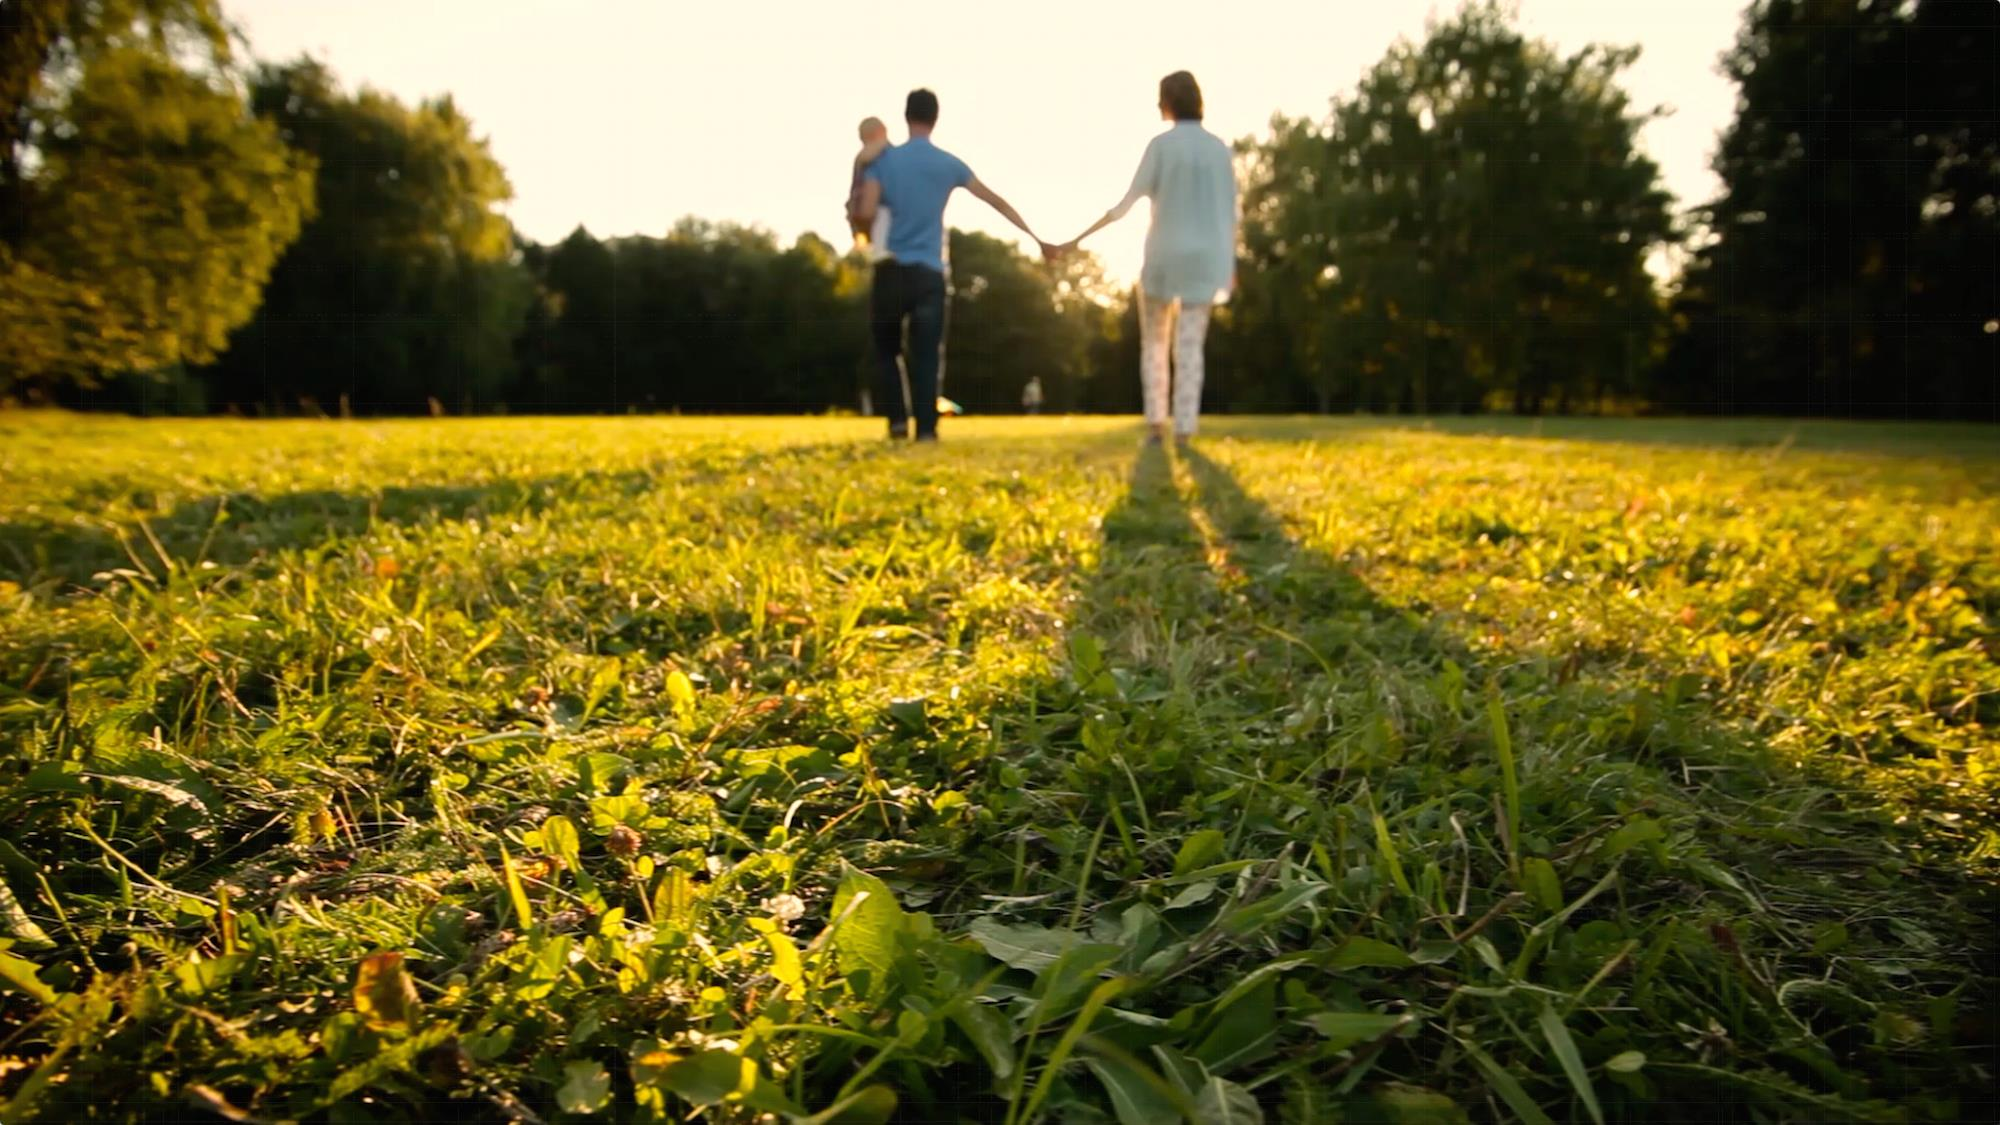 Family walking hand in hand in a meadow